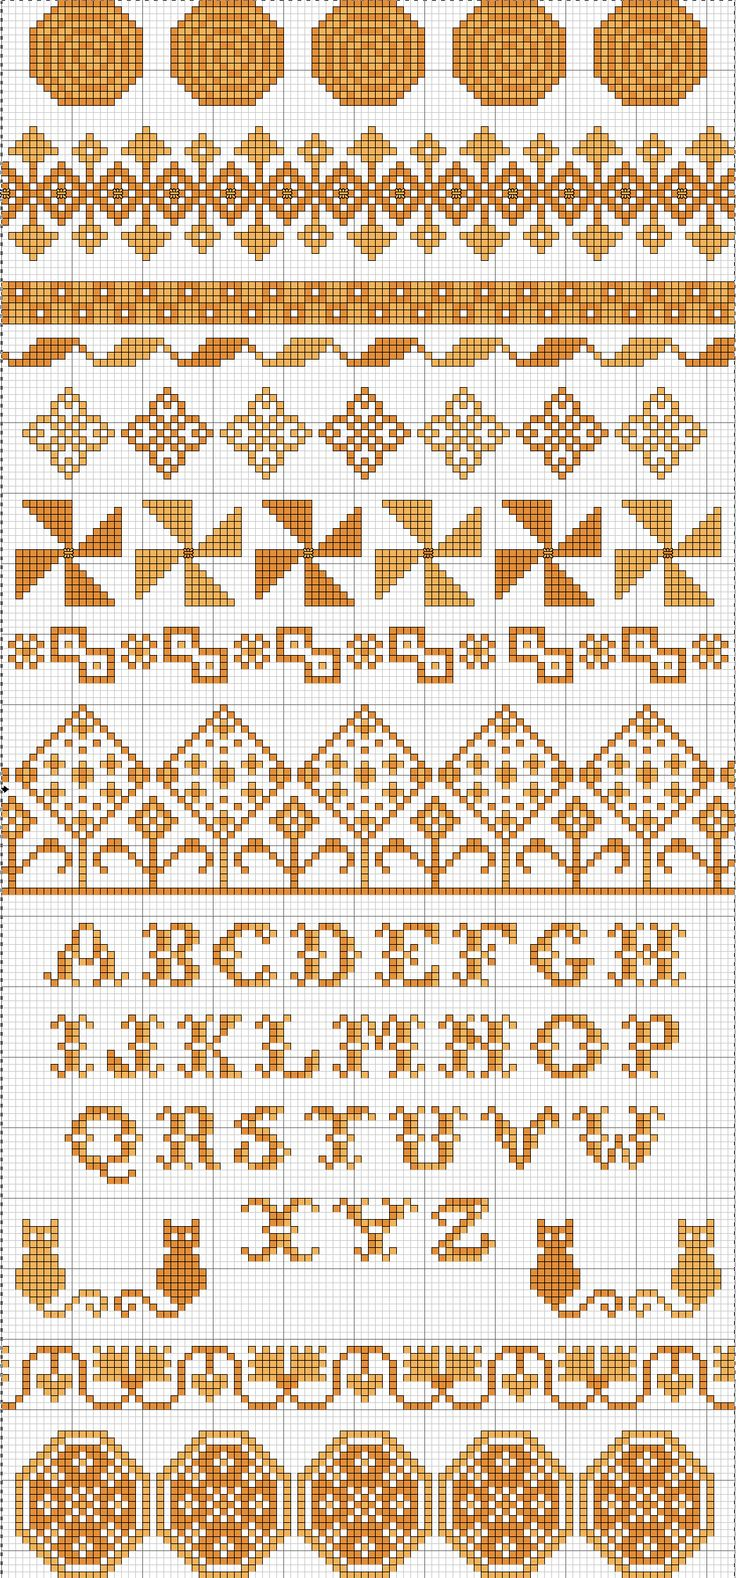 Freebie | Embroiderbee's Primary Hive | Page 11